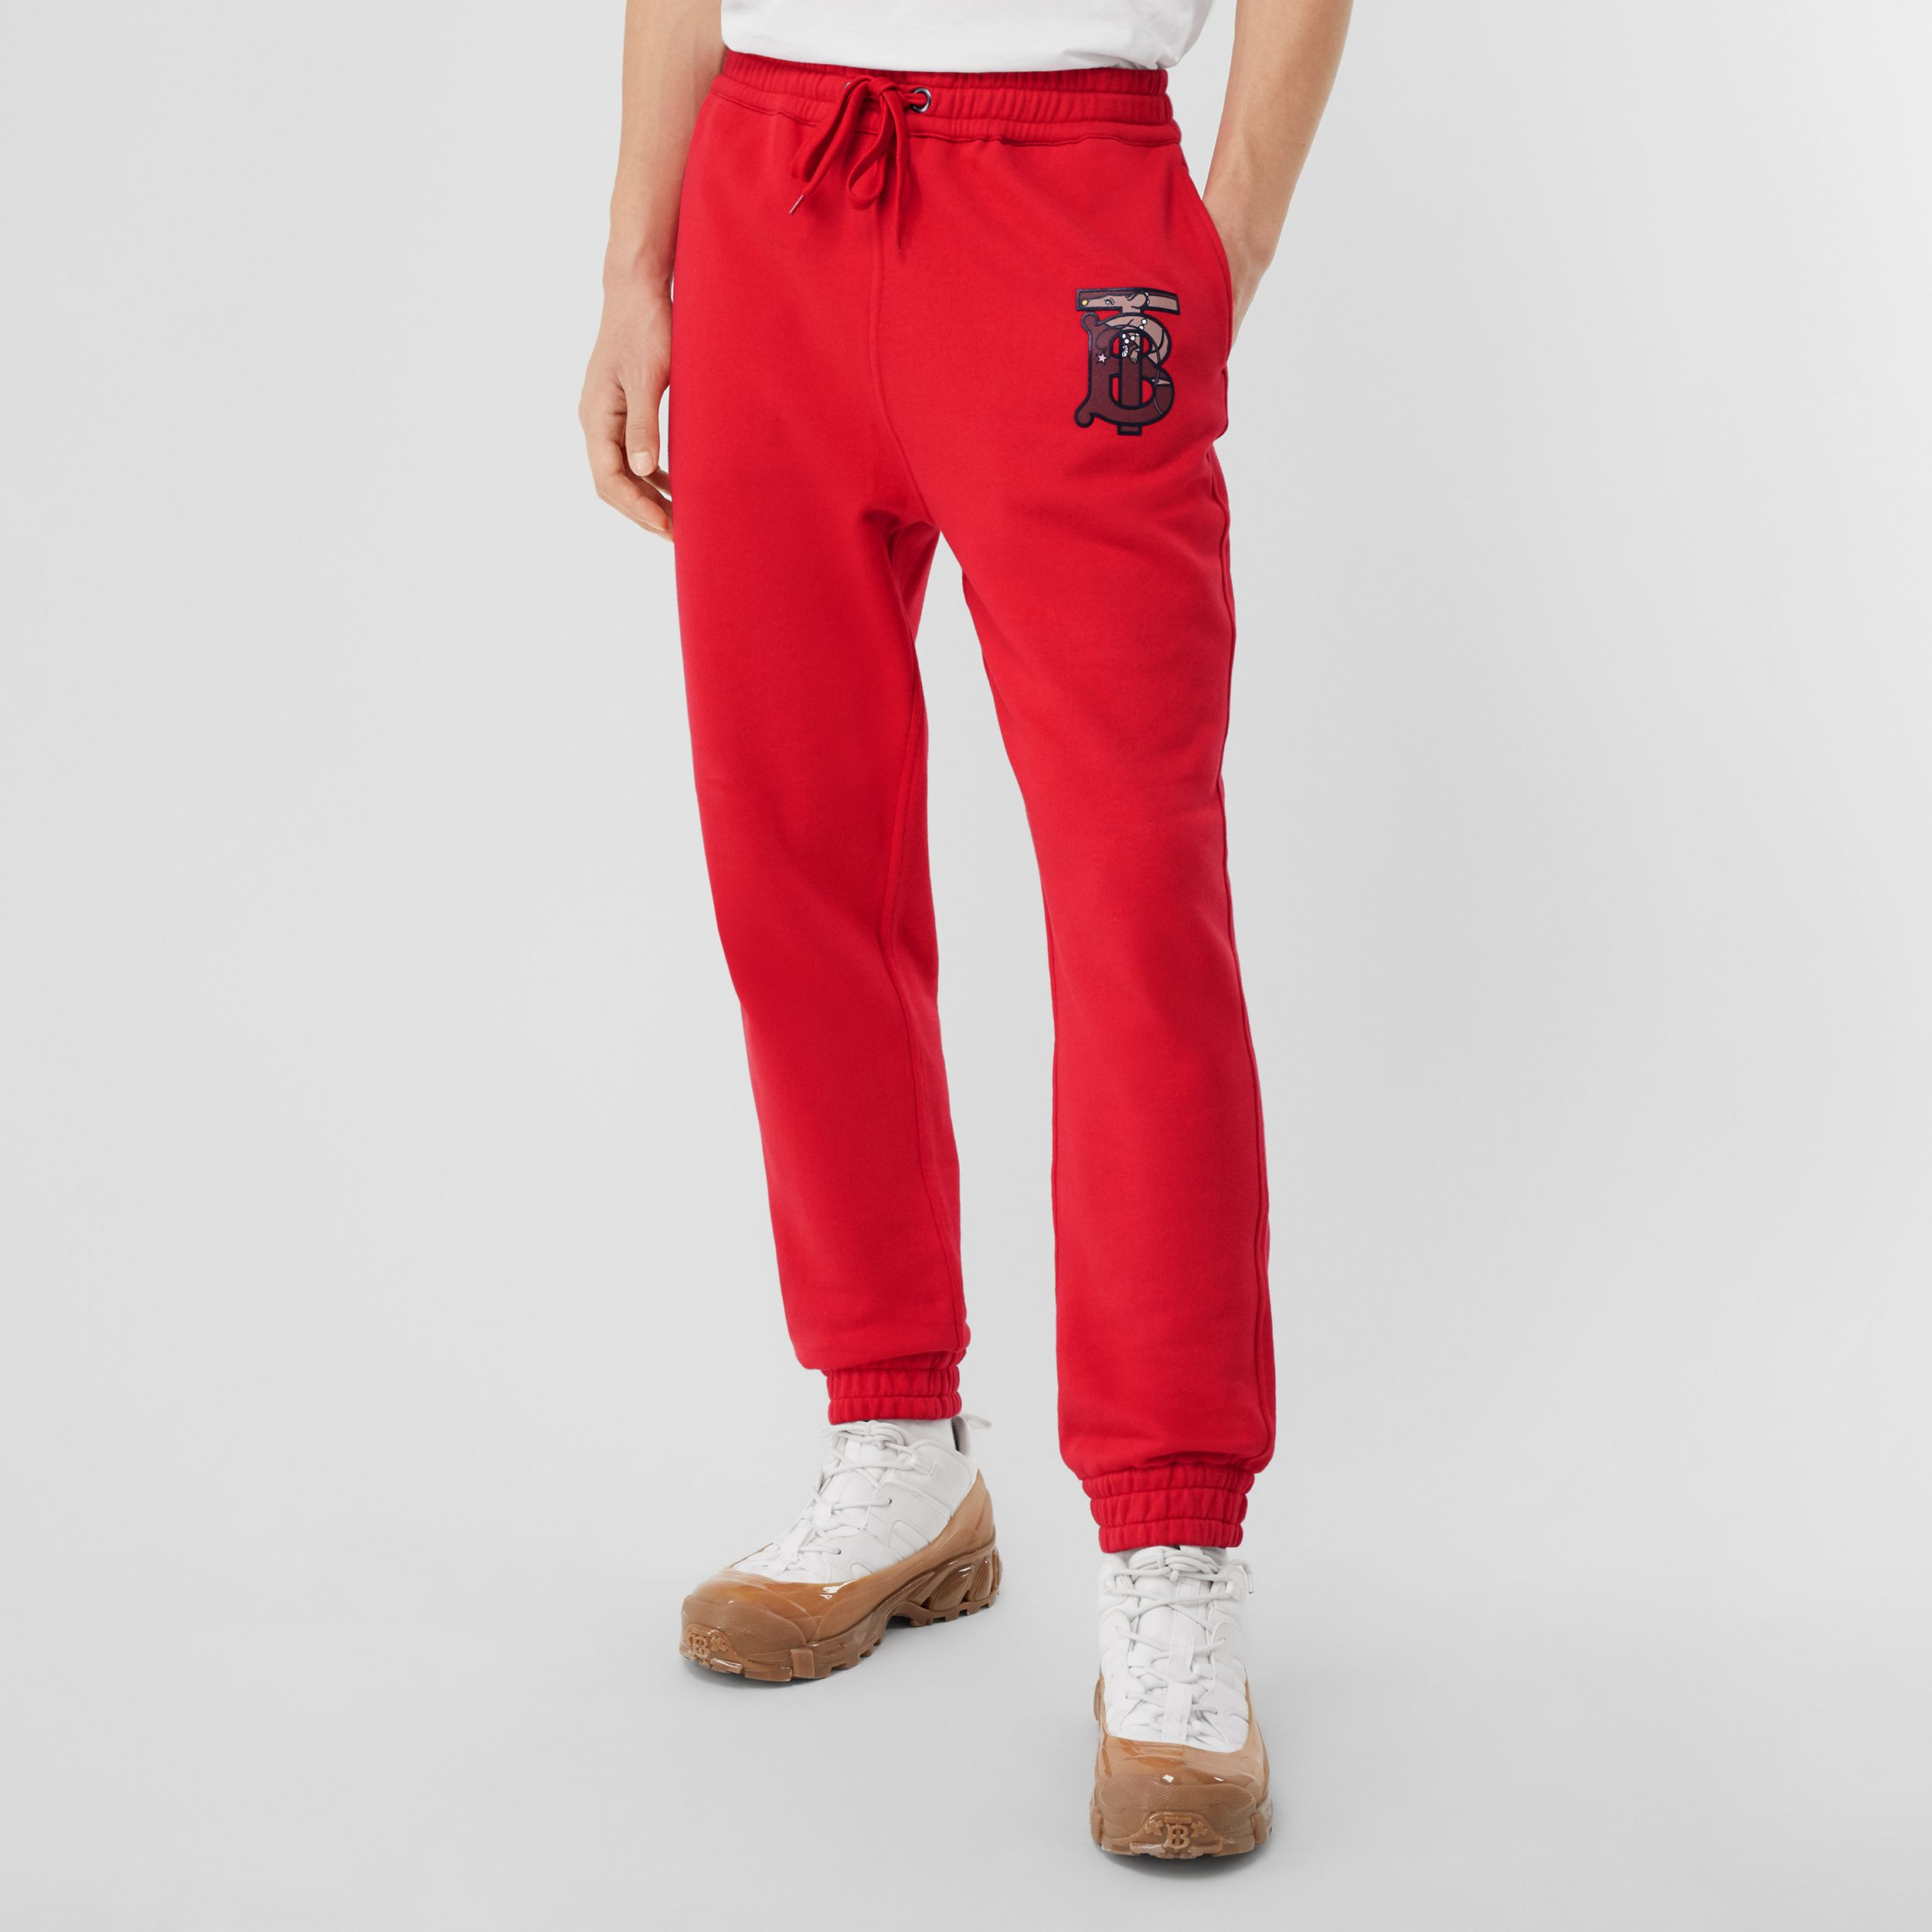 Monogram Motif Cotton Trackpants in Bright Red - Men | Burberry - 4